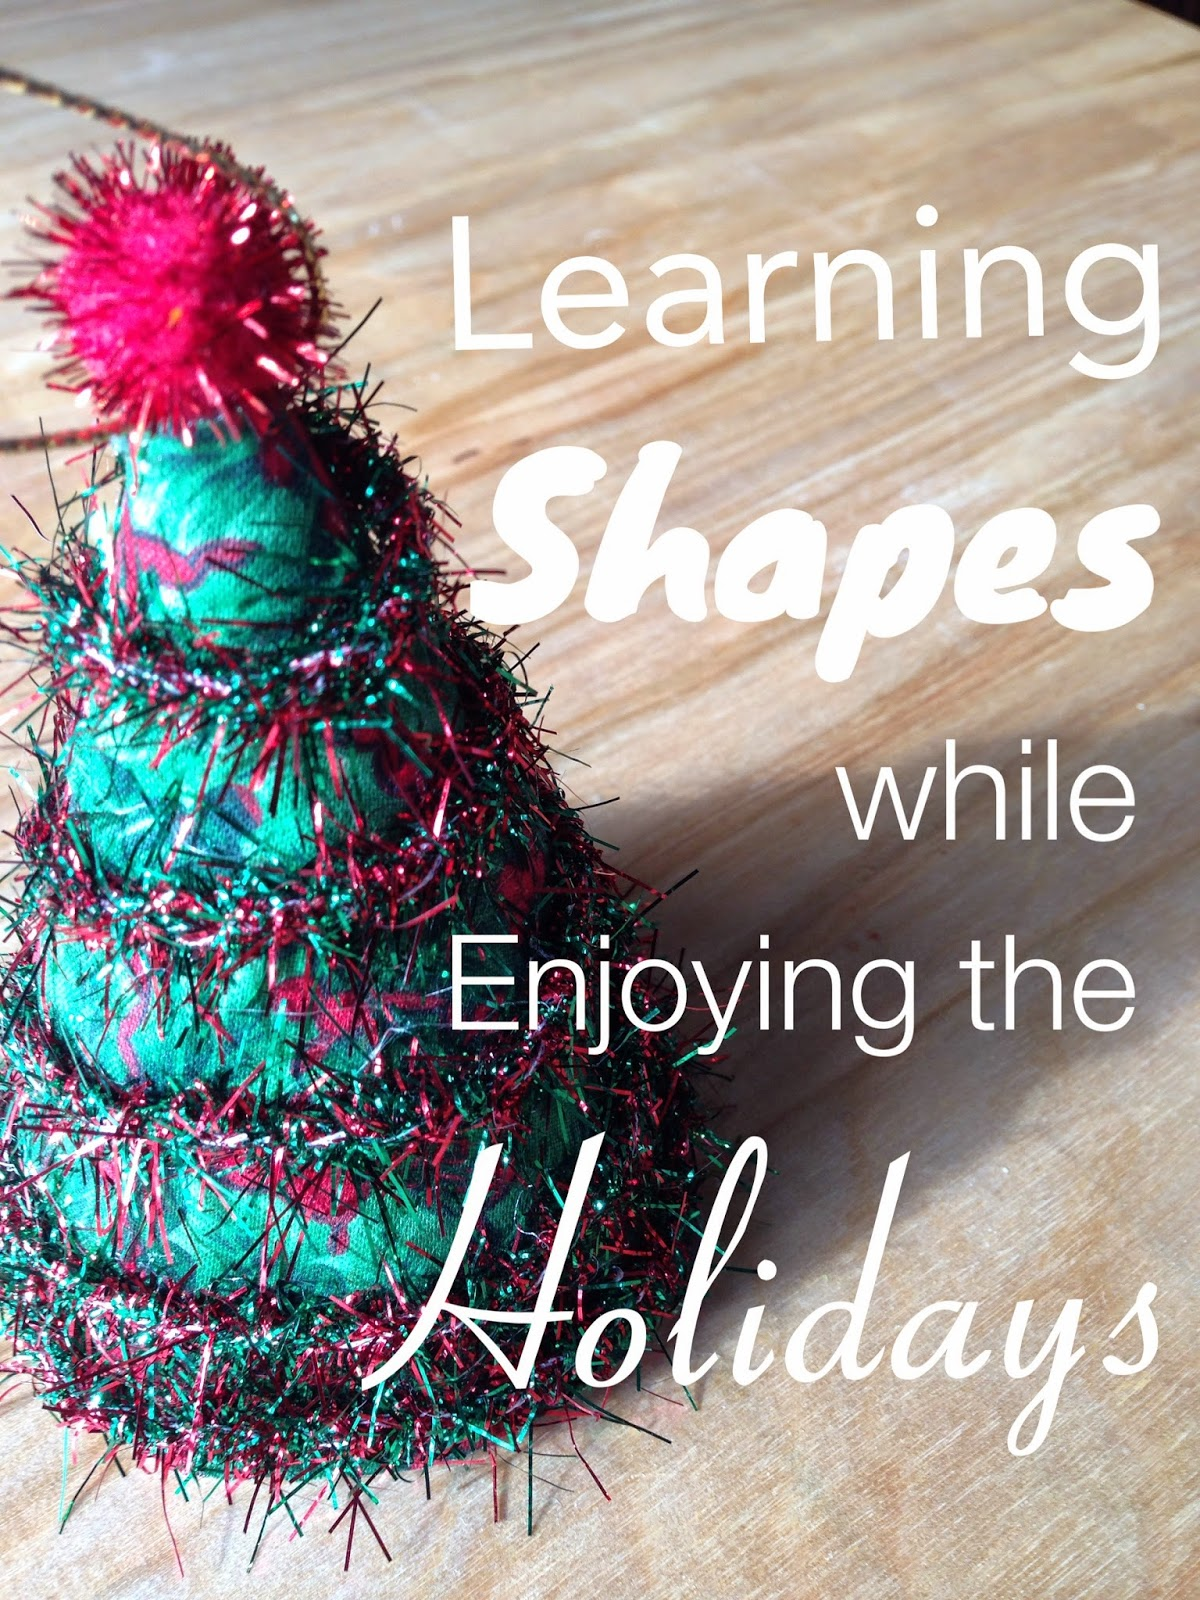 Enjoy Christmas with your toddler, and learn some preschool geometry along the way.